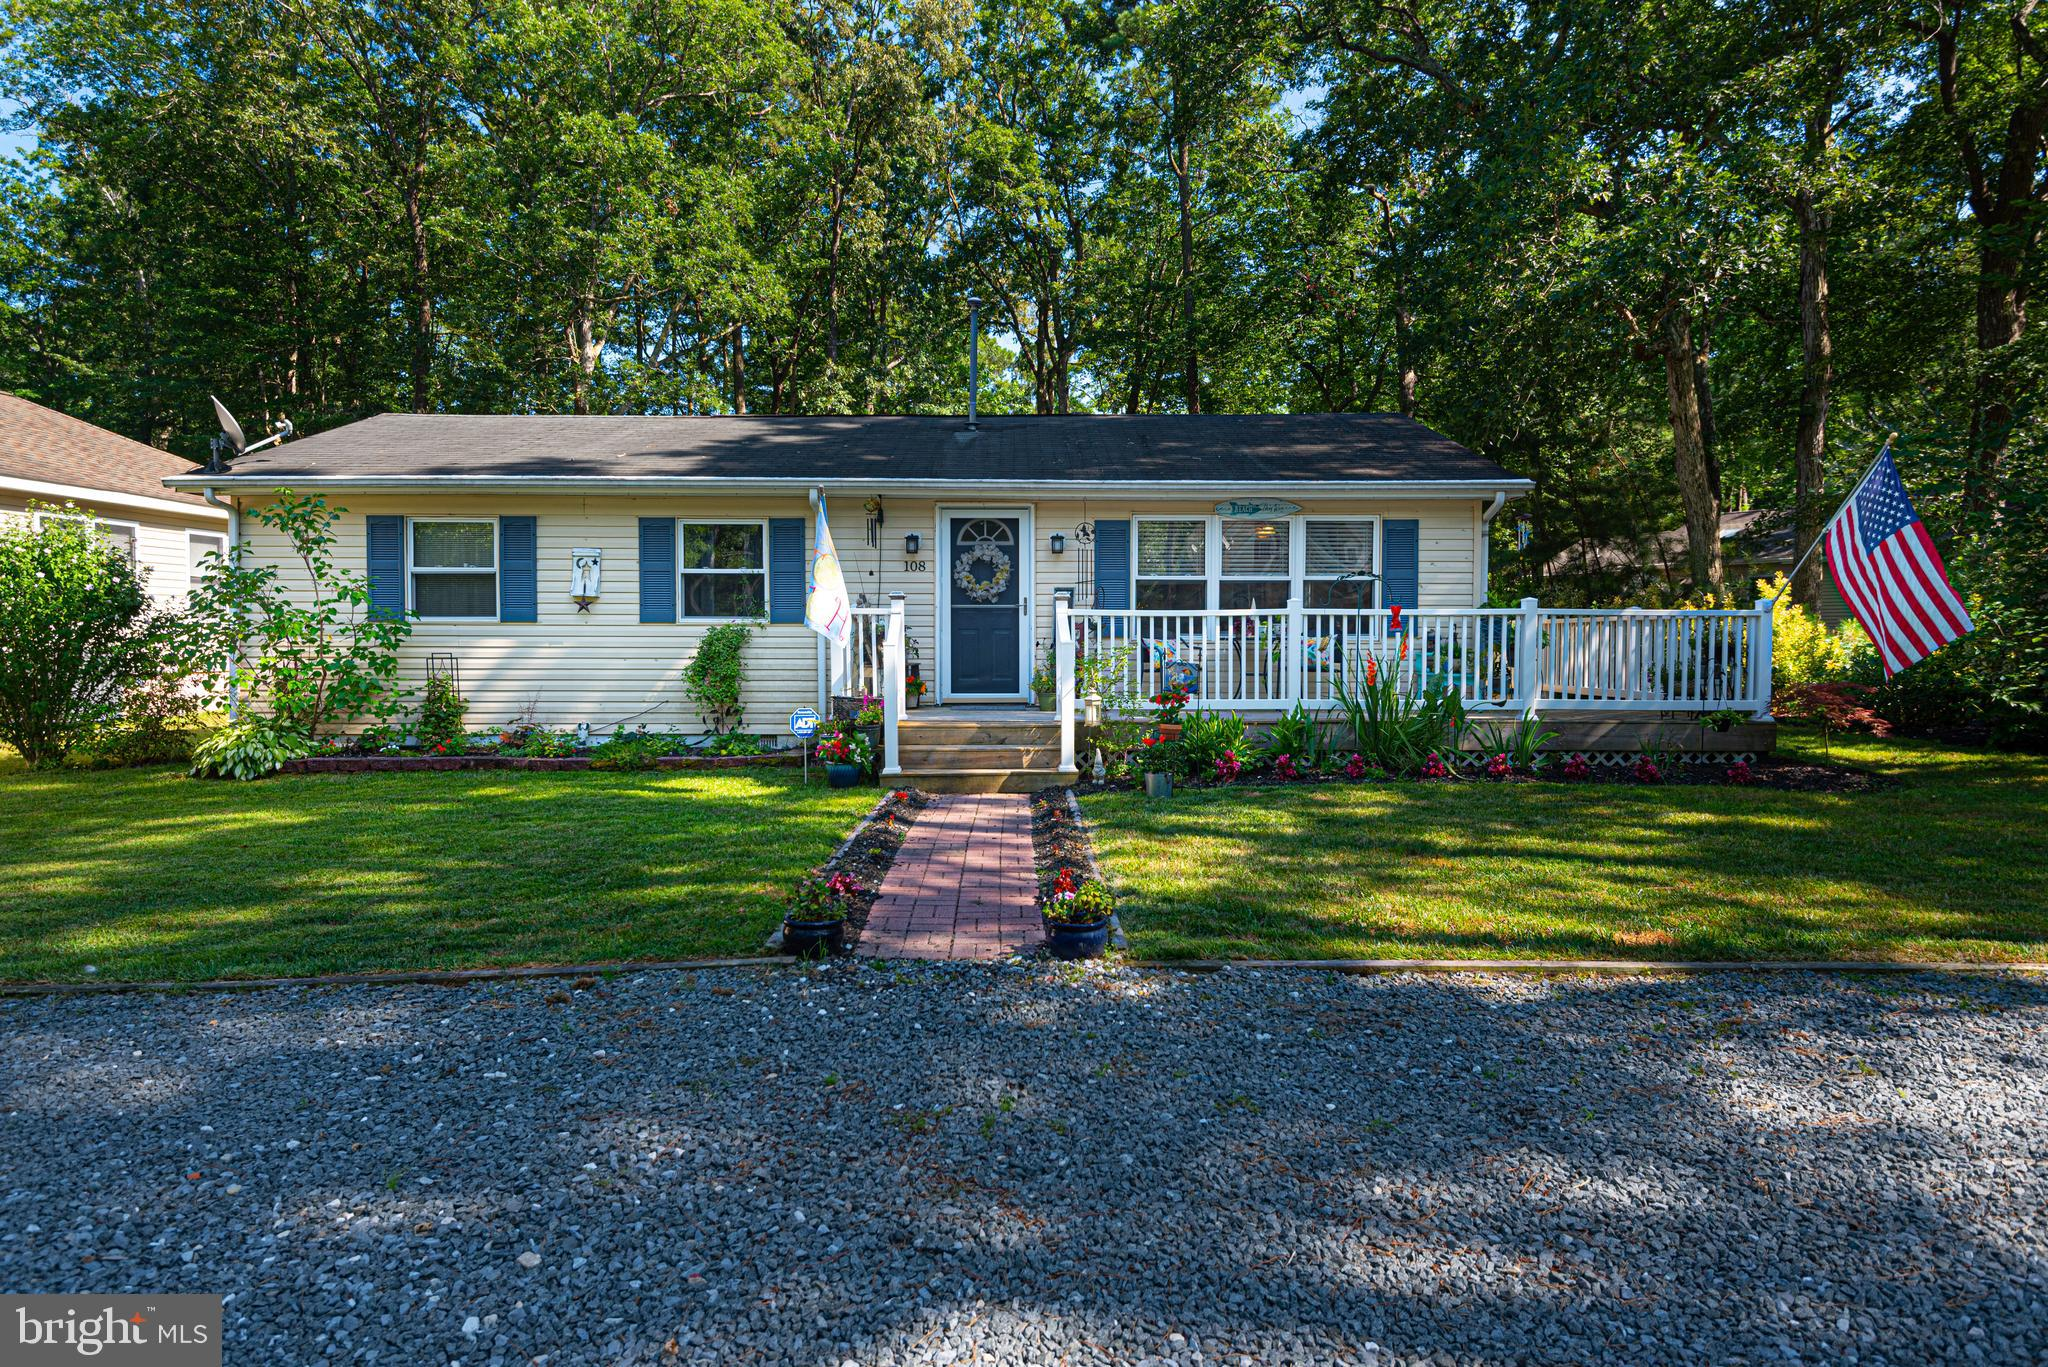 New on the market! Perfect for year round living or an investment rental, this home sits on an open lot. 2 bed 2 bath with office/ den/ bedroom 3 and large sunroom that opens up to a beautiful yard with gardens and 2 patios, plus a storage shed. Only 4 miles to the beach, inside North Gate of Ocean Pines. Great community, quiet street. This home comes with many updates: new roof, newer floors, paint, appliances, new hot water heater, new washer and dryer. Taking offers! Don't let this one get away!  Upgrades, replacements and year work was done: 1. Floors, carpet, paint   2014 2. Kitchen appliances : oven, microwave, back-splash   2014 3. Refrigerator   2016 4. Garbage disposal    2018 5. Hot water heater     2018 Natural Gas 6. Replacement on fans and upgrade on heat/air unit    2019 7. Washing machine     2020 8. Dryer   2021 9. Replaced and upgraded both bathroom sinks/vanities     2019 10.Sump pump was replaced in 2021 11. New Roof 8/24/2021